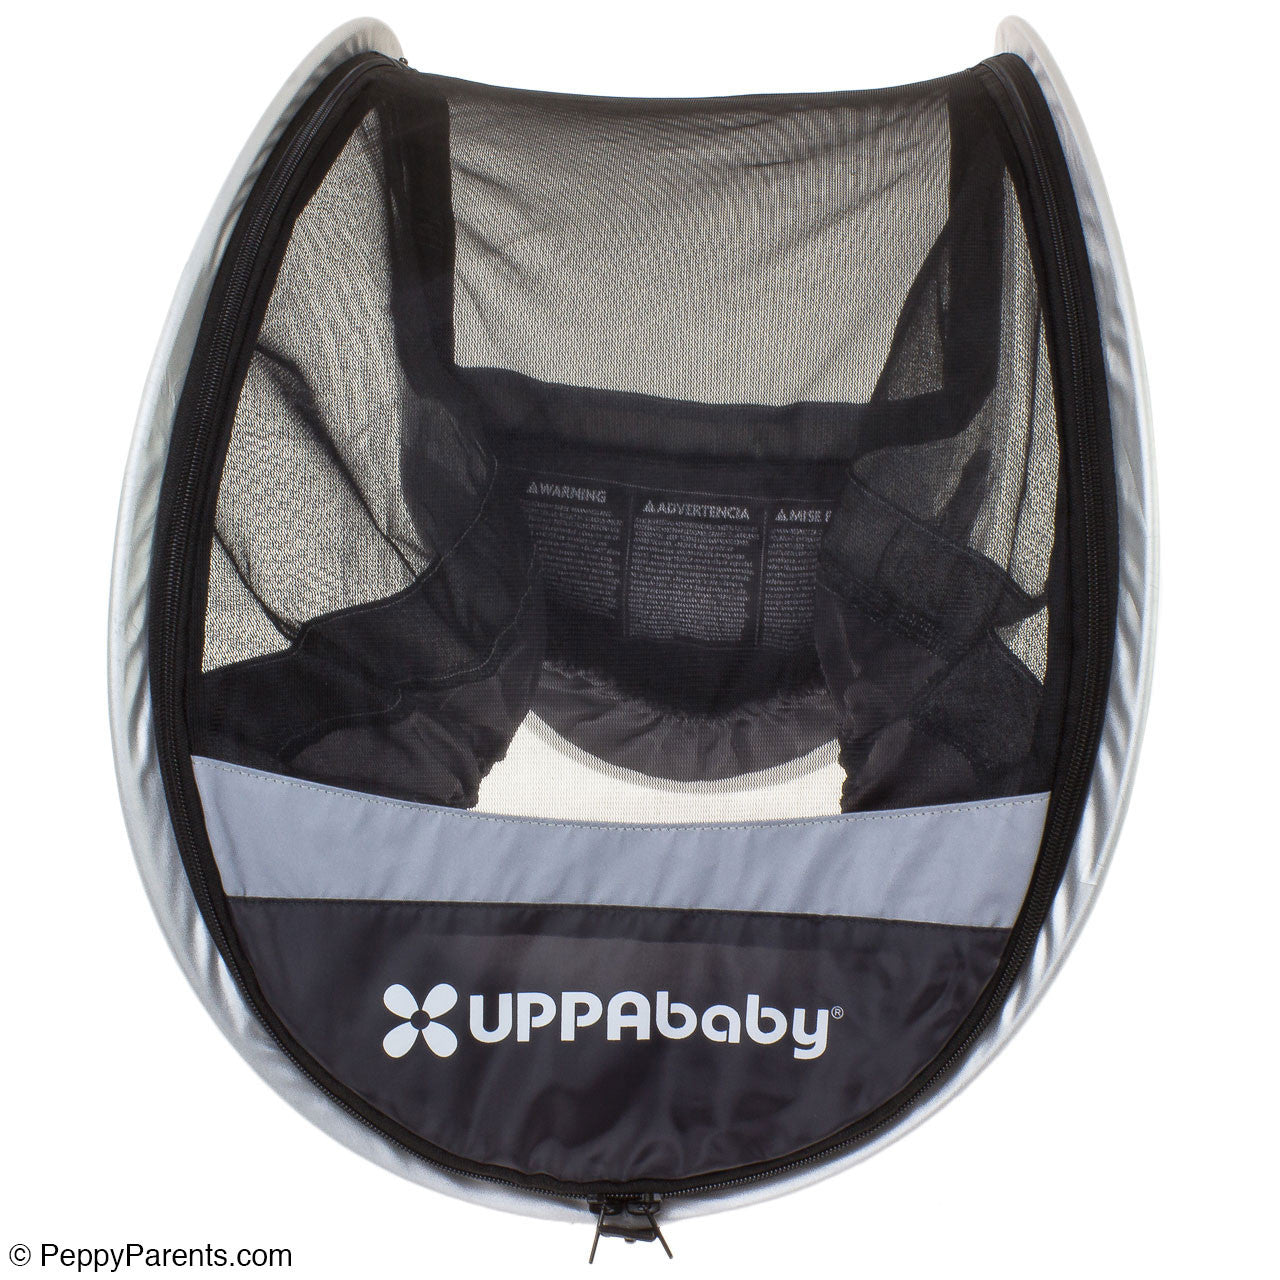 Astounding Uppababy Cabana All Weather Shield For Mesa Peppyparents Com Machost Co Dining Chair Design Ideas Machostcouk